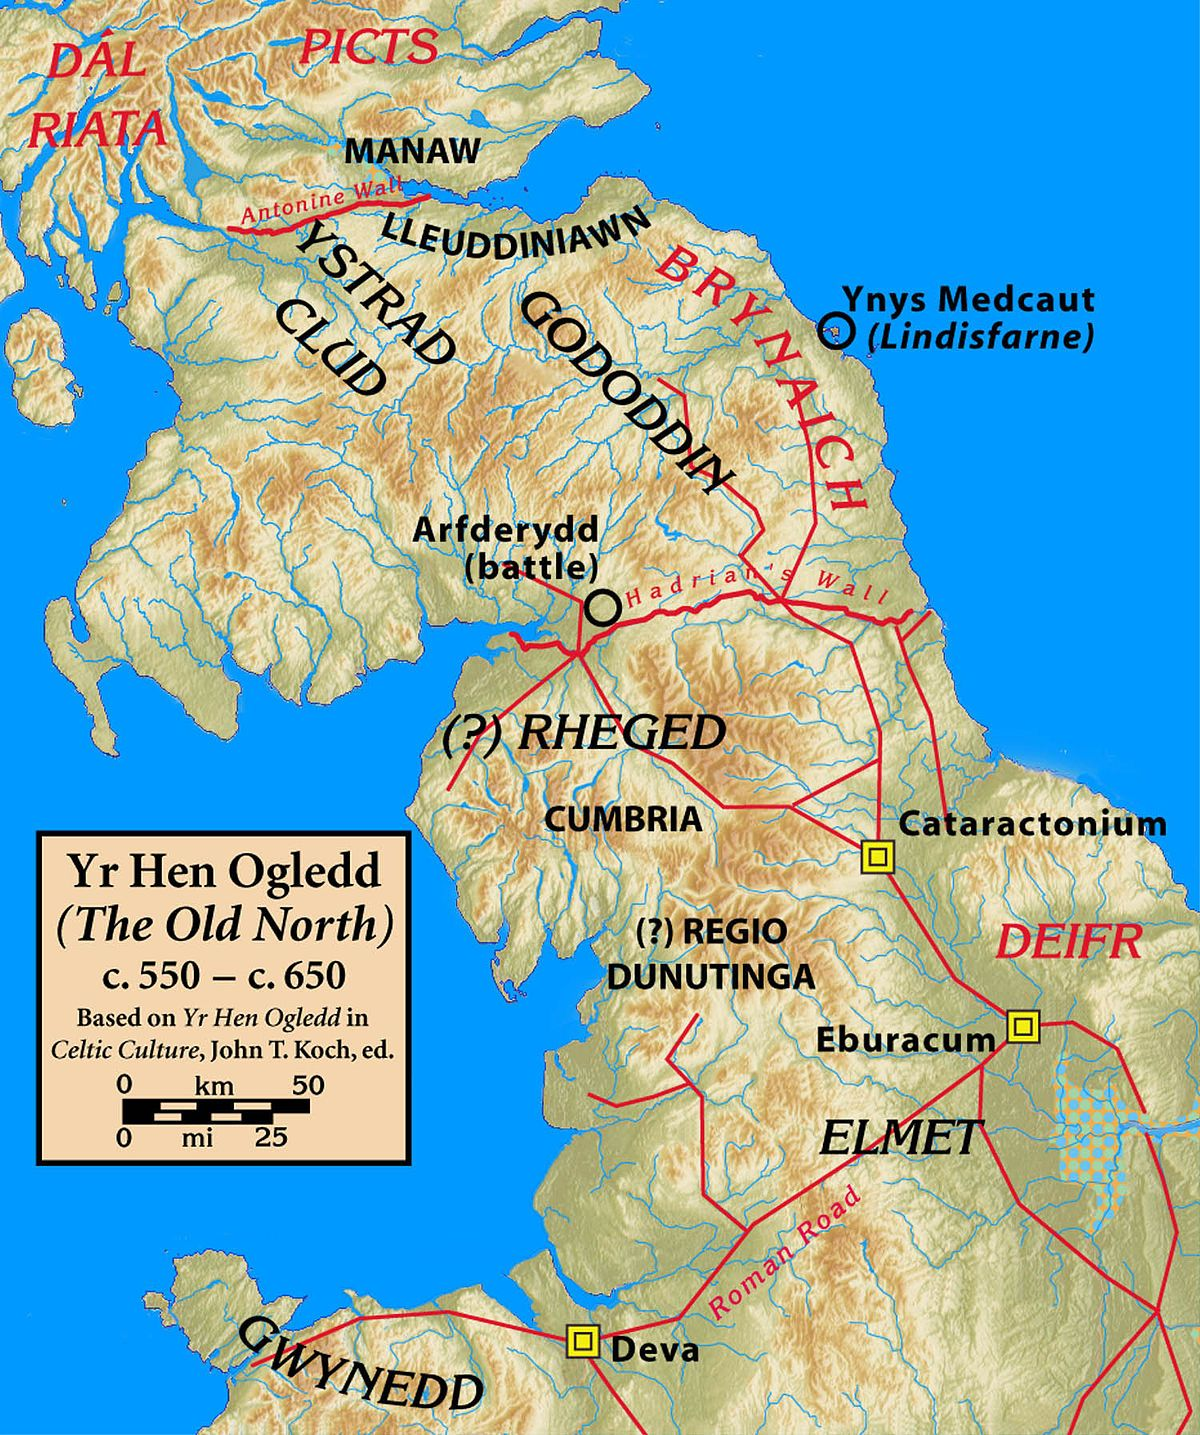 Elmet - West Riding - After the conquest of Elmet, the realm was incorporated into Northumbria on Easter in 627 - Angles of Bernicia - Yorkshire, England